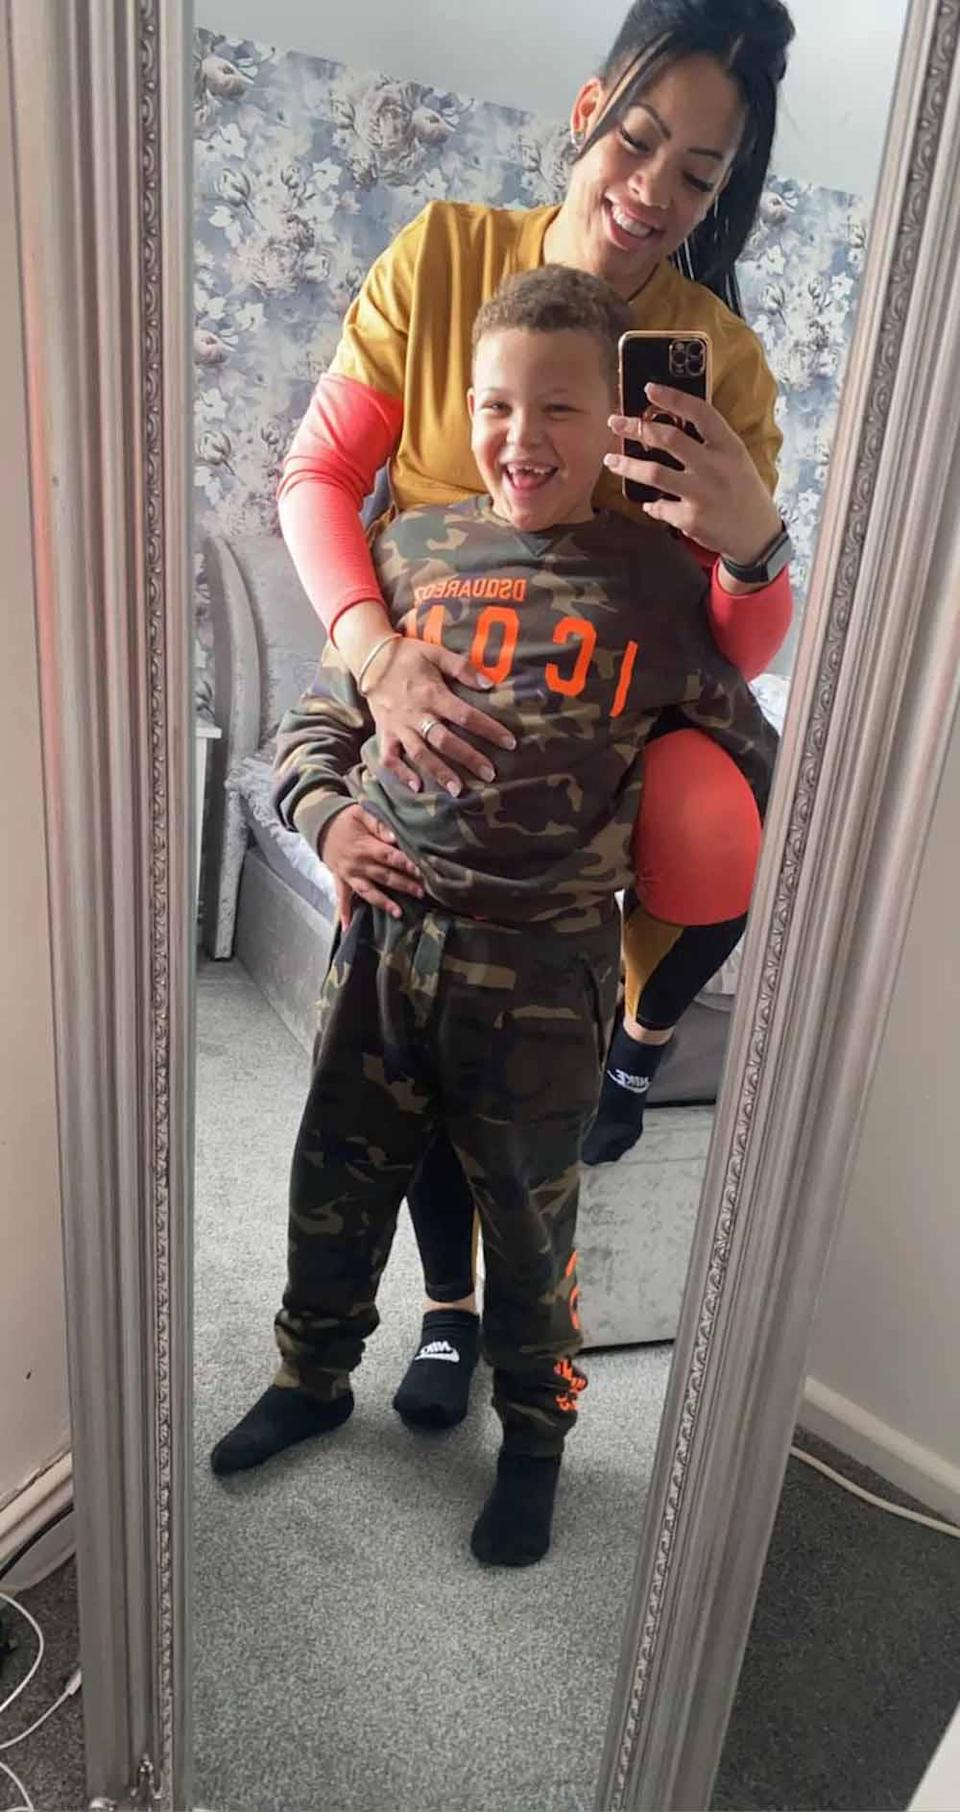 Kylie and her son Marcell. PA REAL LIFE COLLECT